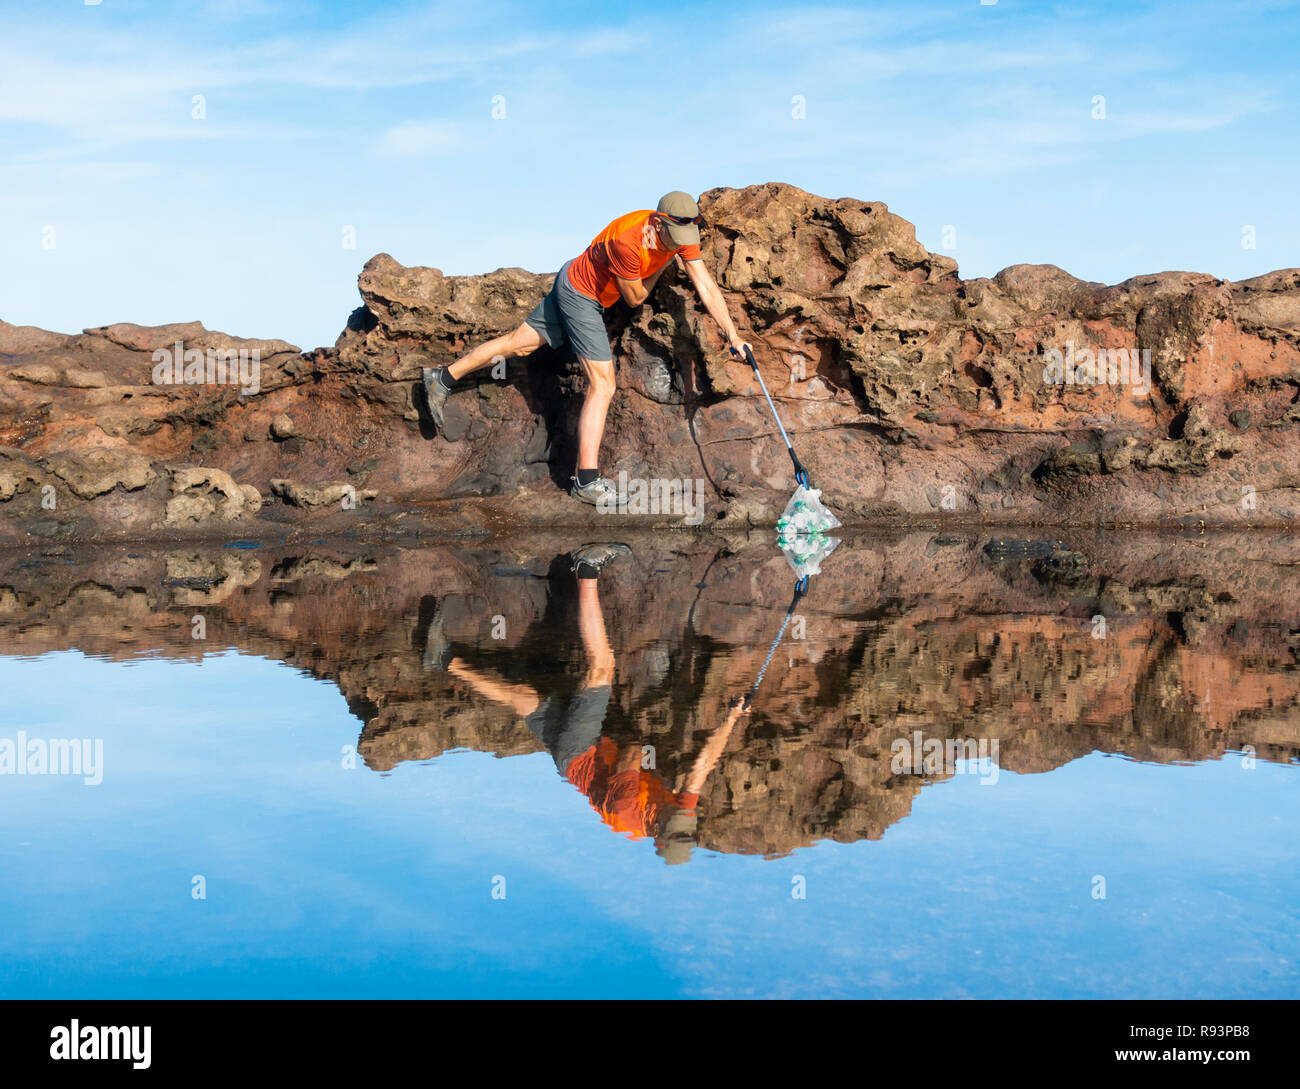 A Plogger/jogger collects plastic rubbish from beach during his morning run - Stock Image